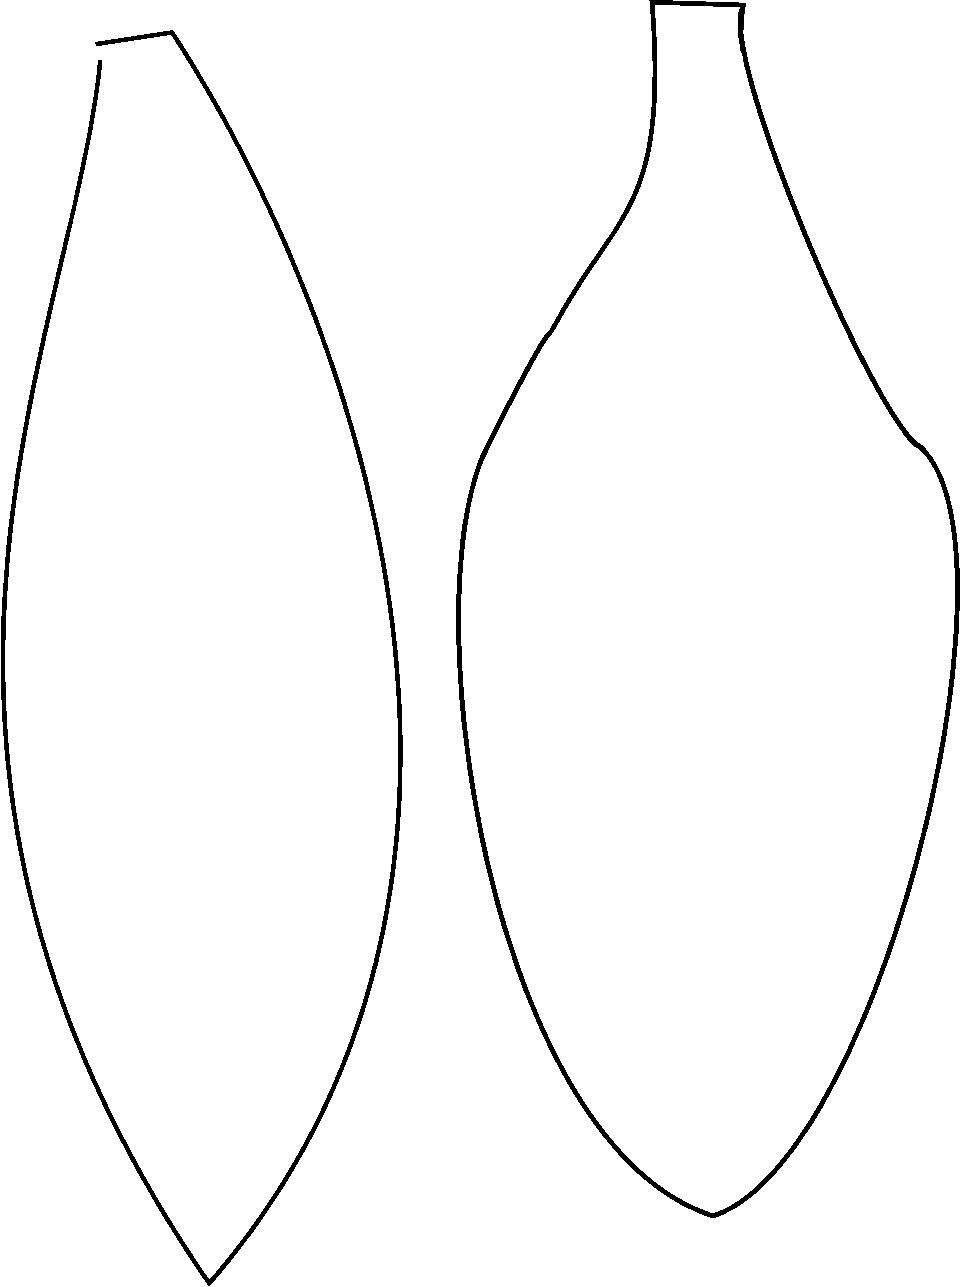 This is a graphic of Striking Daisy Template Printable